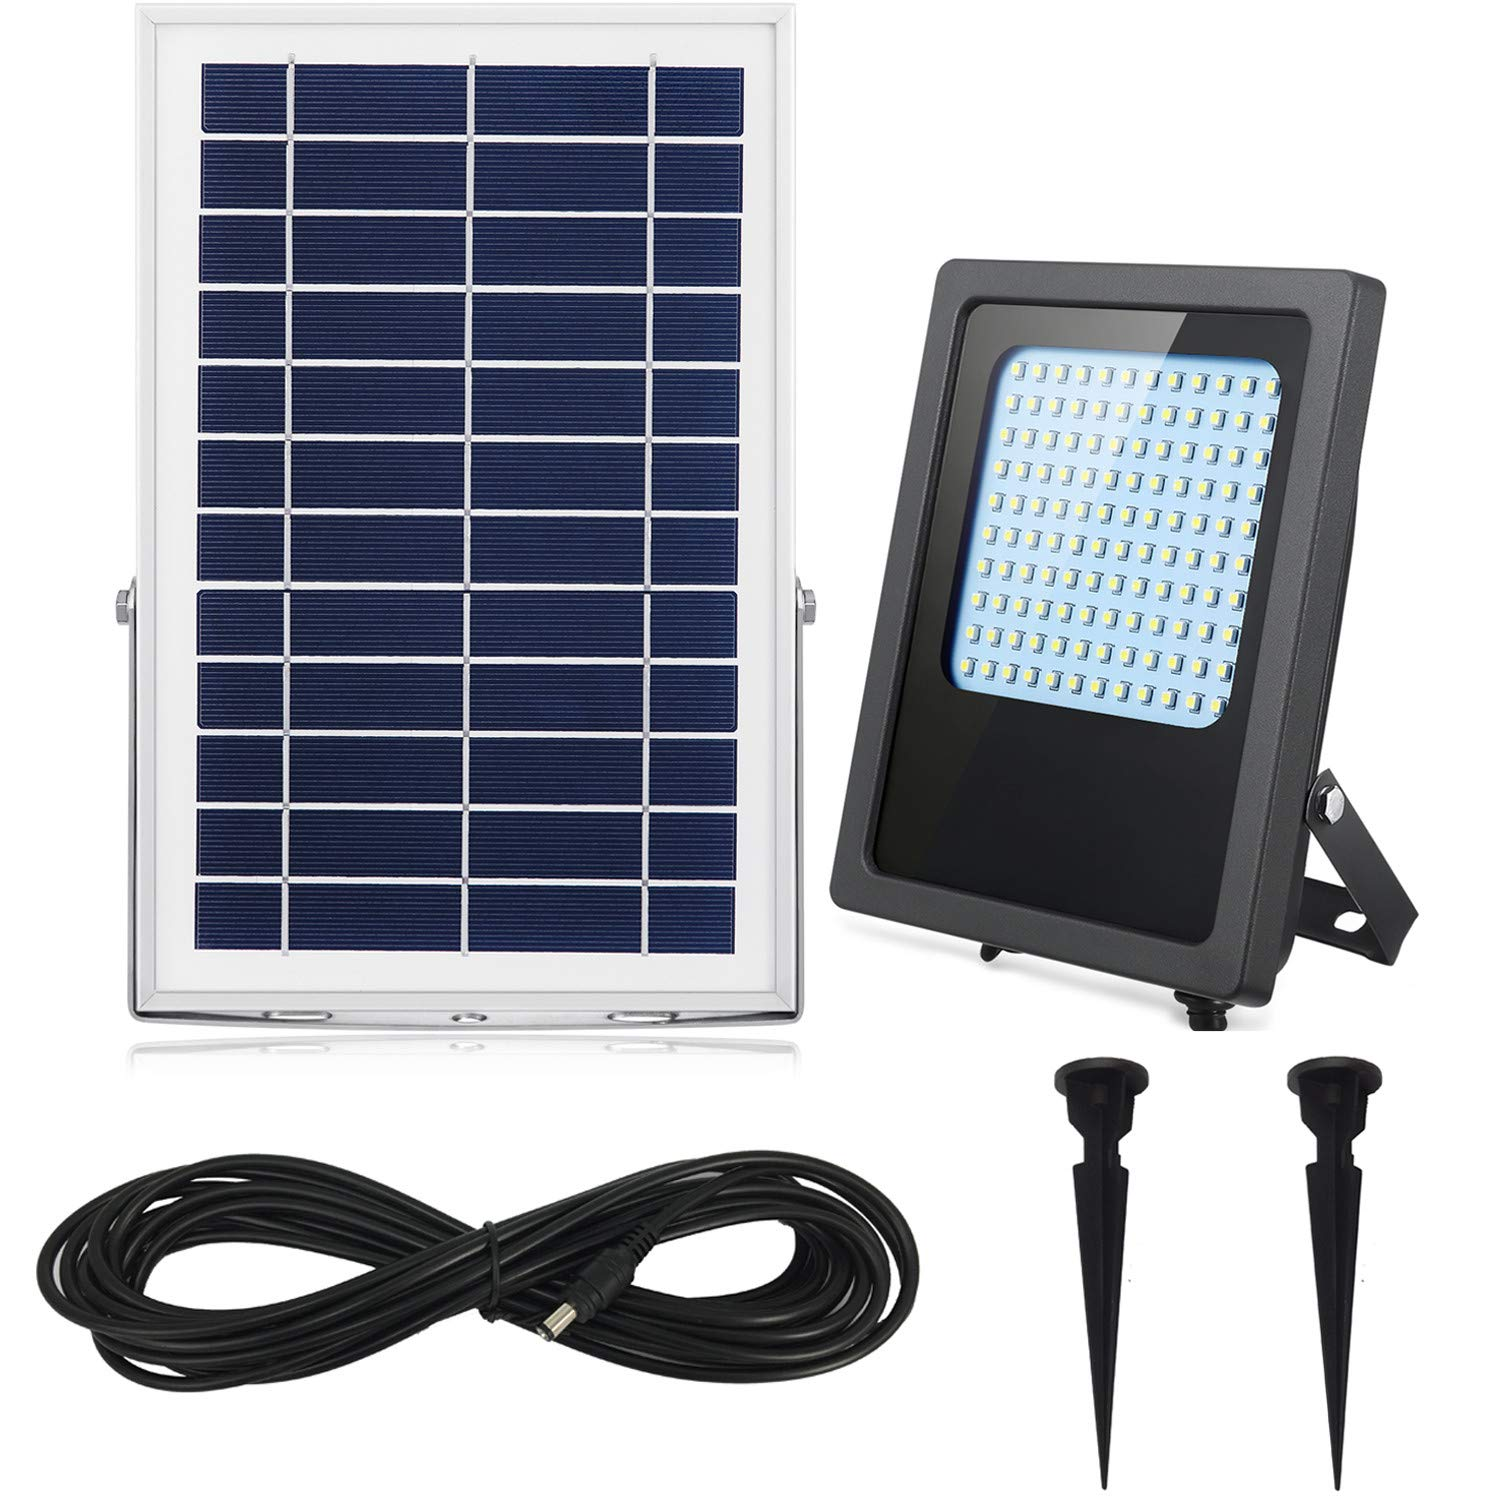 Solar Flood Lights Outdoor Dusk to Dawn 120Leds 1000Lumen Rechargeable Solar Powered Led Security Light IP65 Waterproof Auto On/Off for Garden,Landscape,Yard,Porch,Patio,Garage,Pool,Sign,Billboard (W